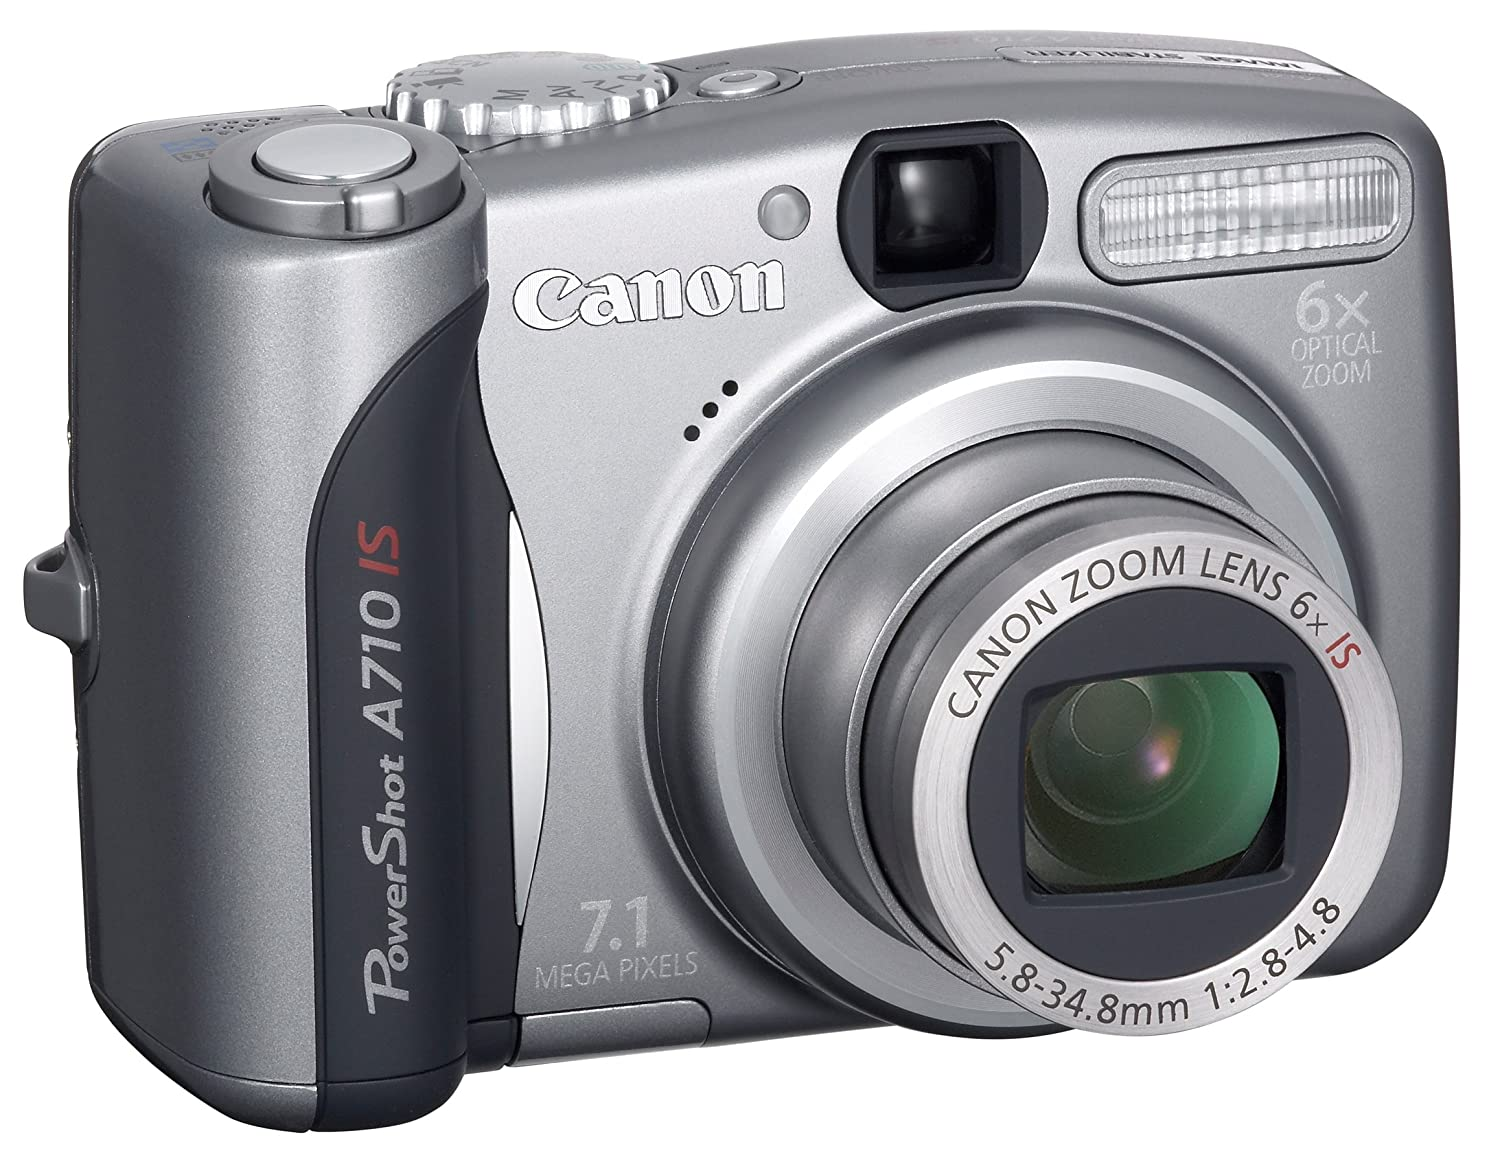 amazon com canon powershot a710 is 7 1mp digital camera with 6x rh amazon com